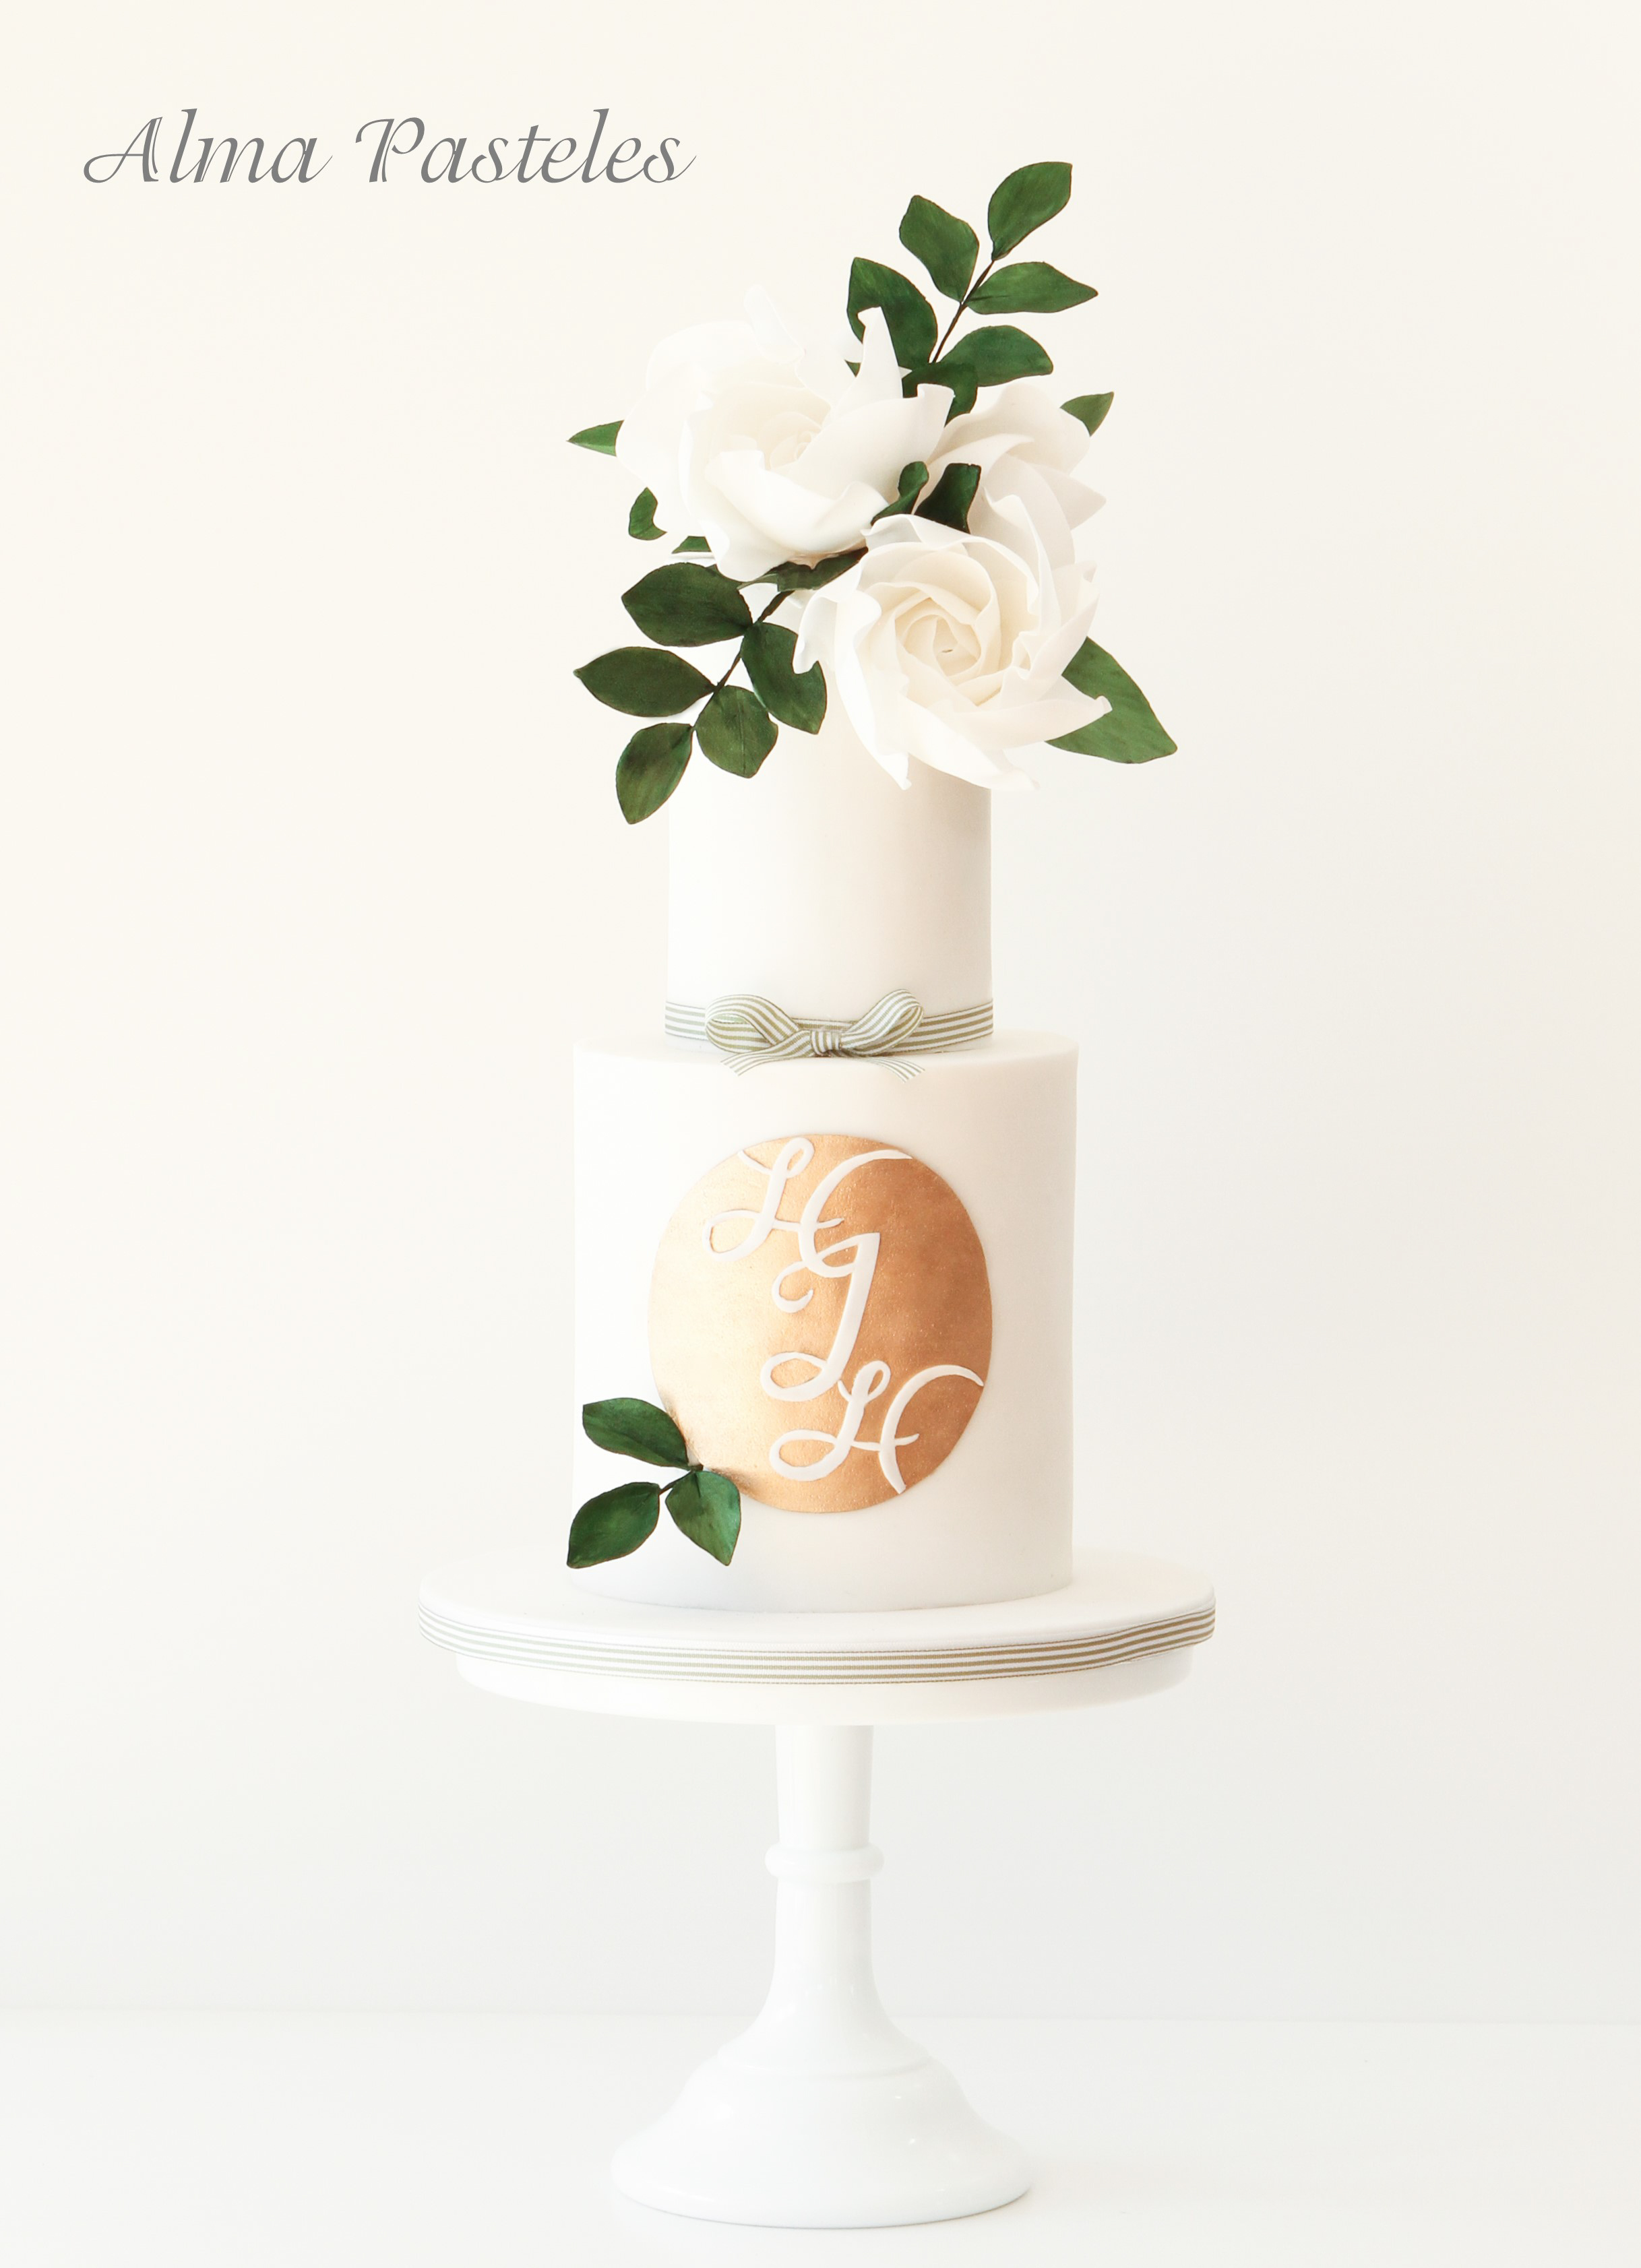 White and gold monogramed wedding cake